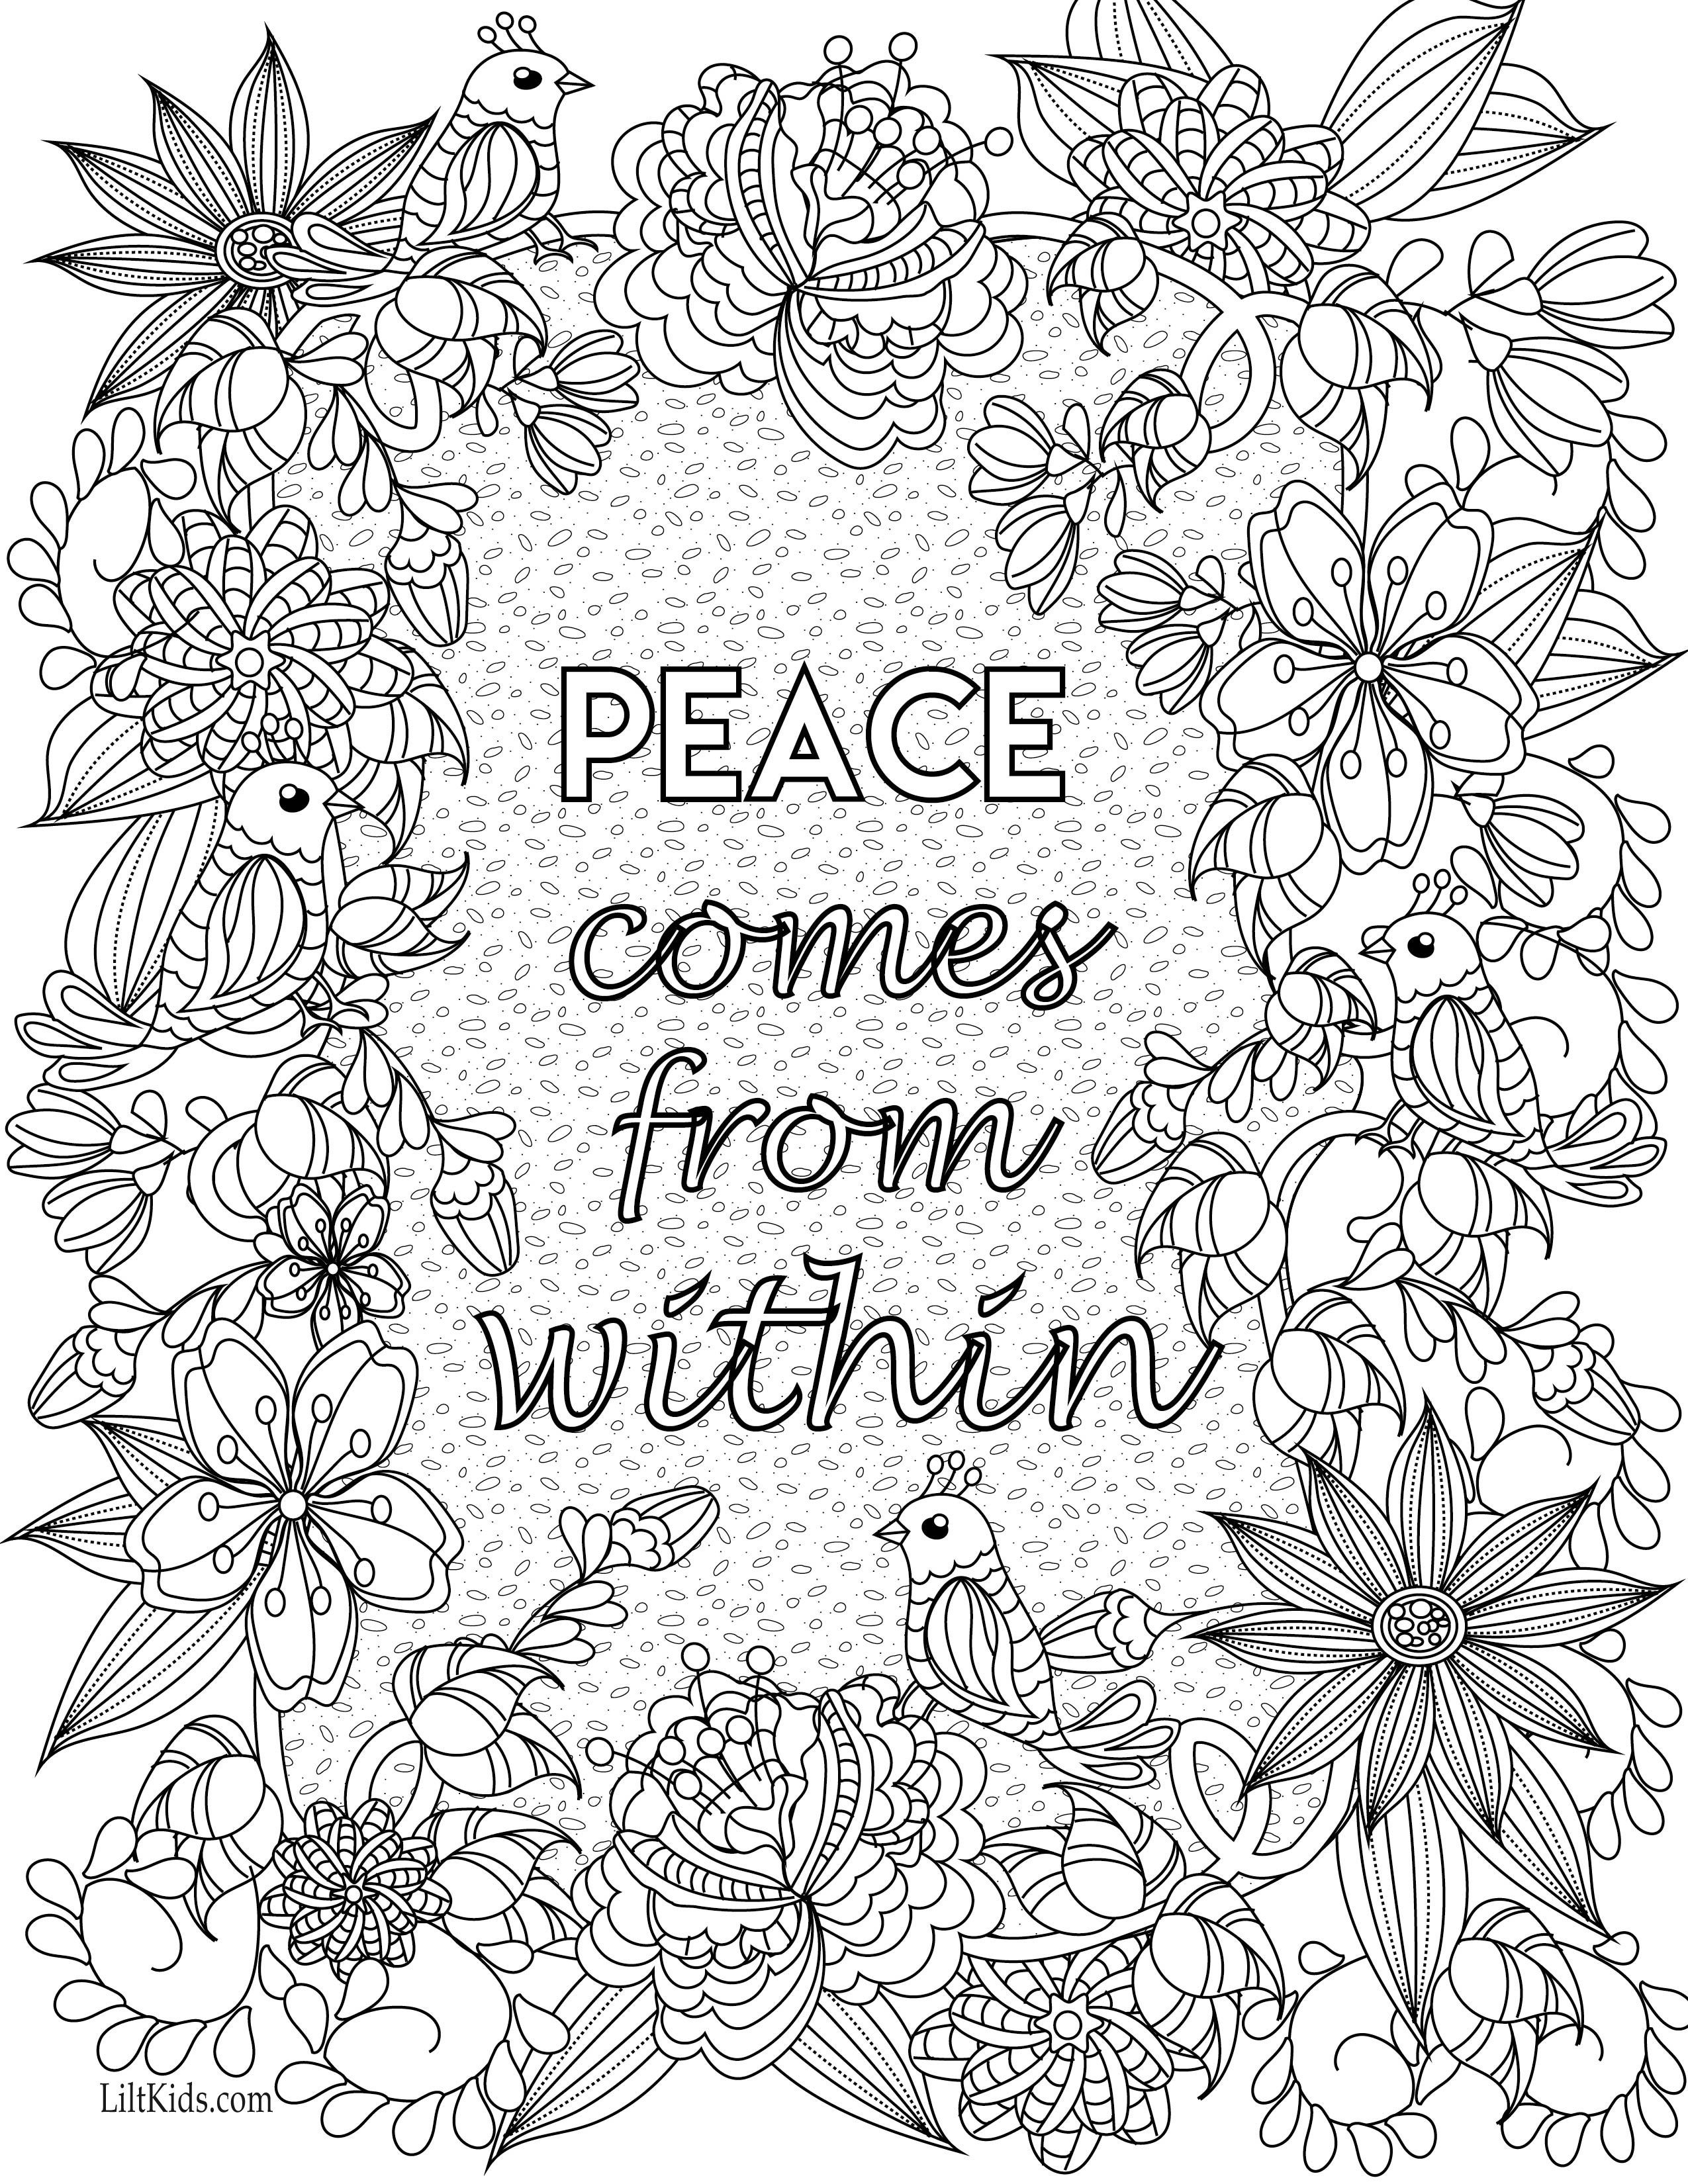 Coloring Pages : Astonishing Free Printables Coloring Pages Teens - Free Printable Inspirational Coloring Pages